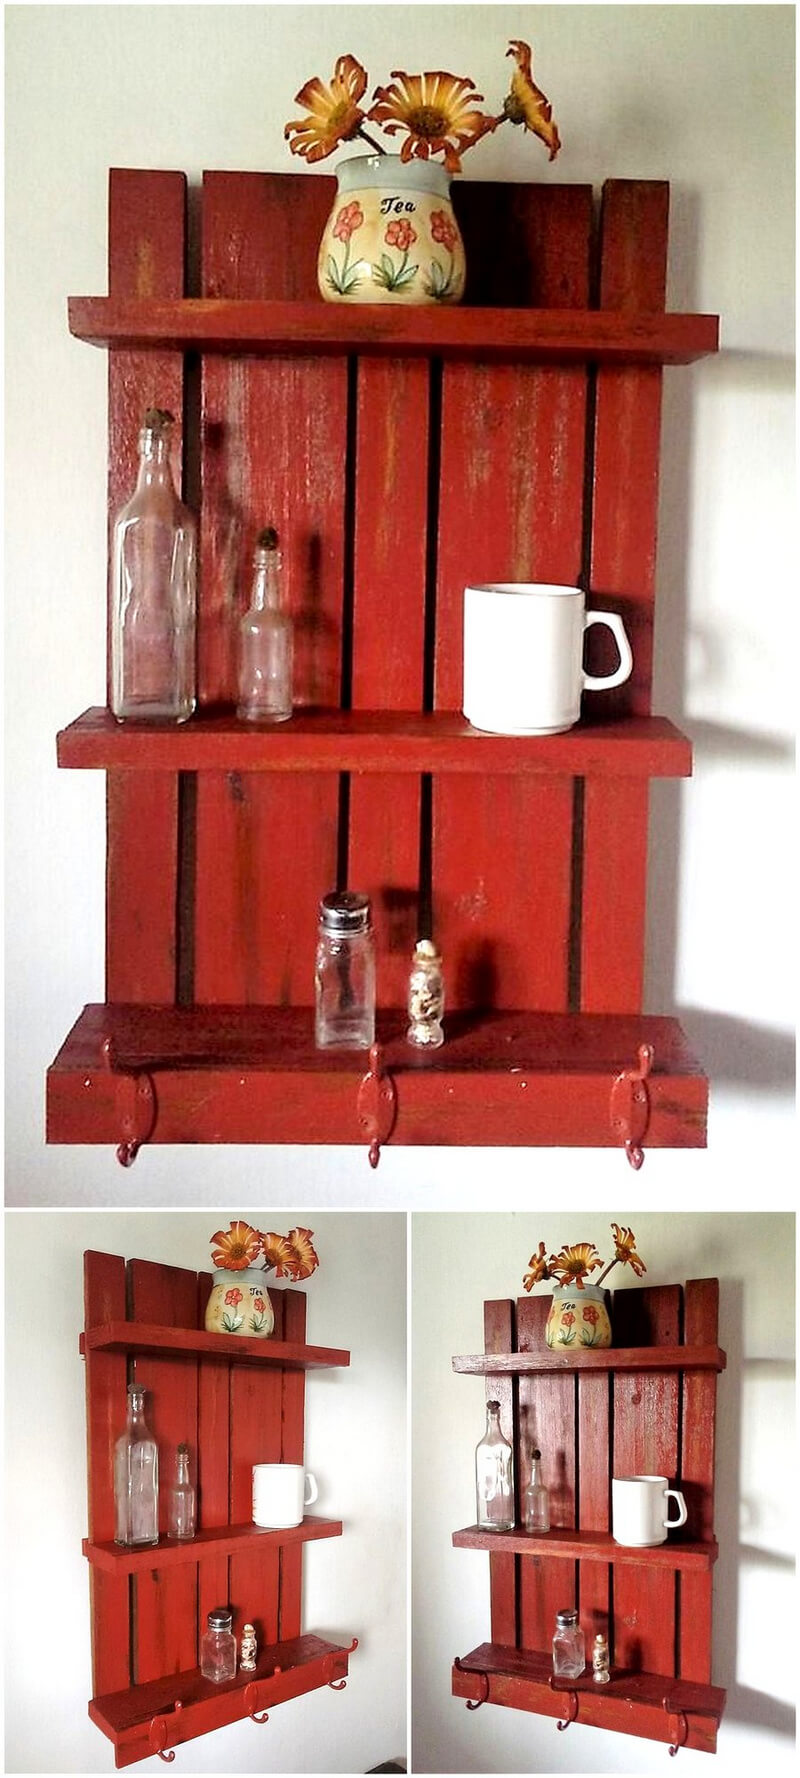 pallets shelf 1